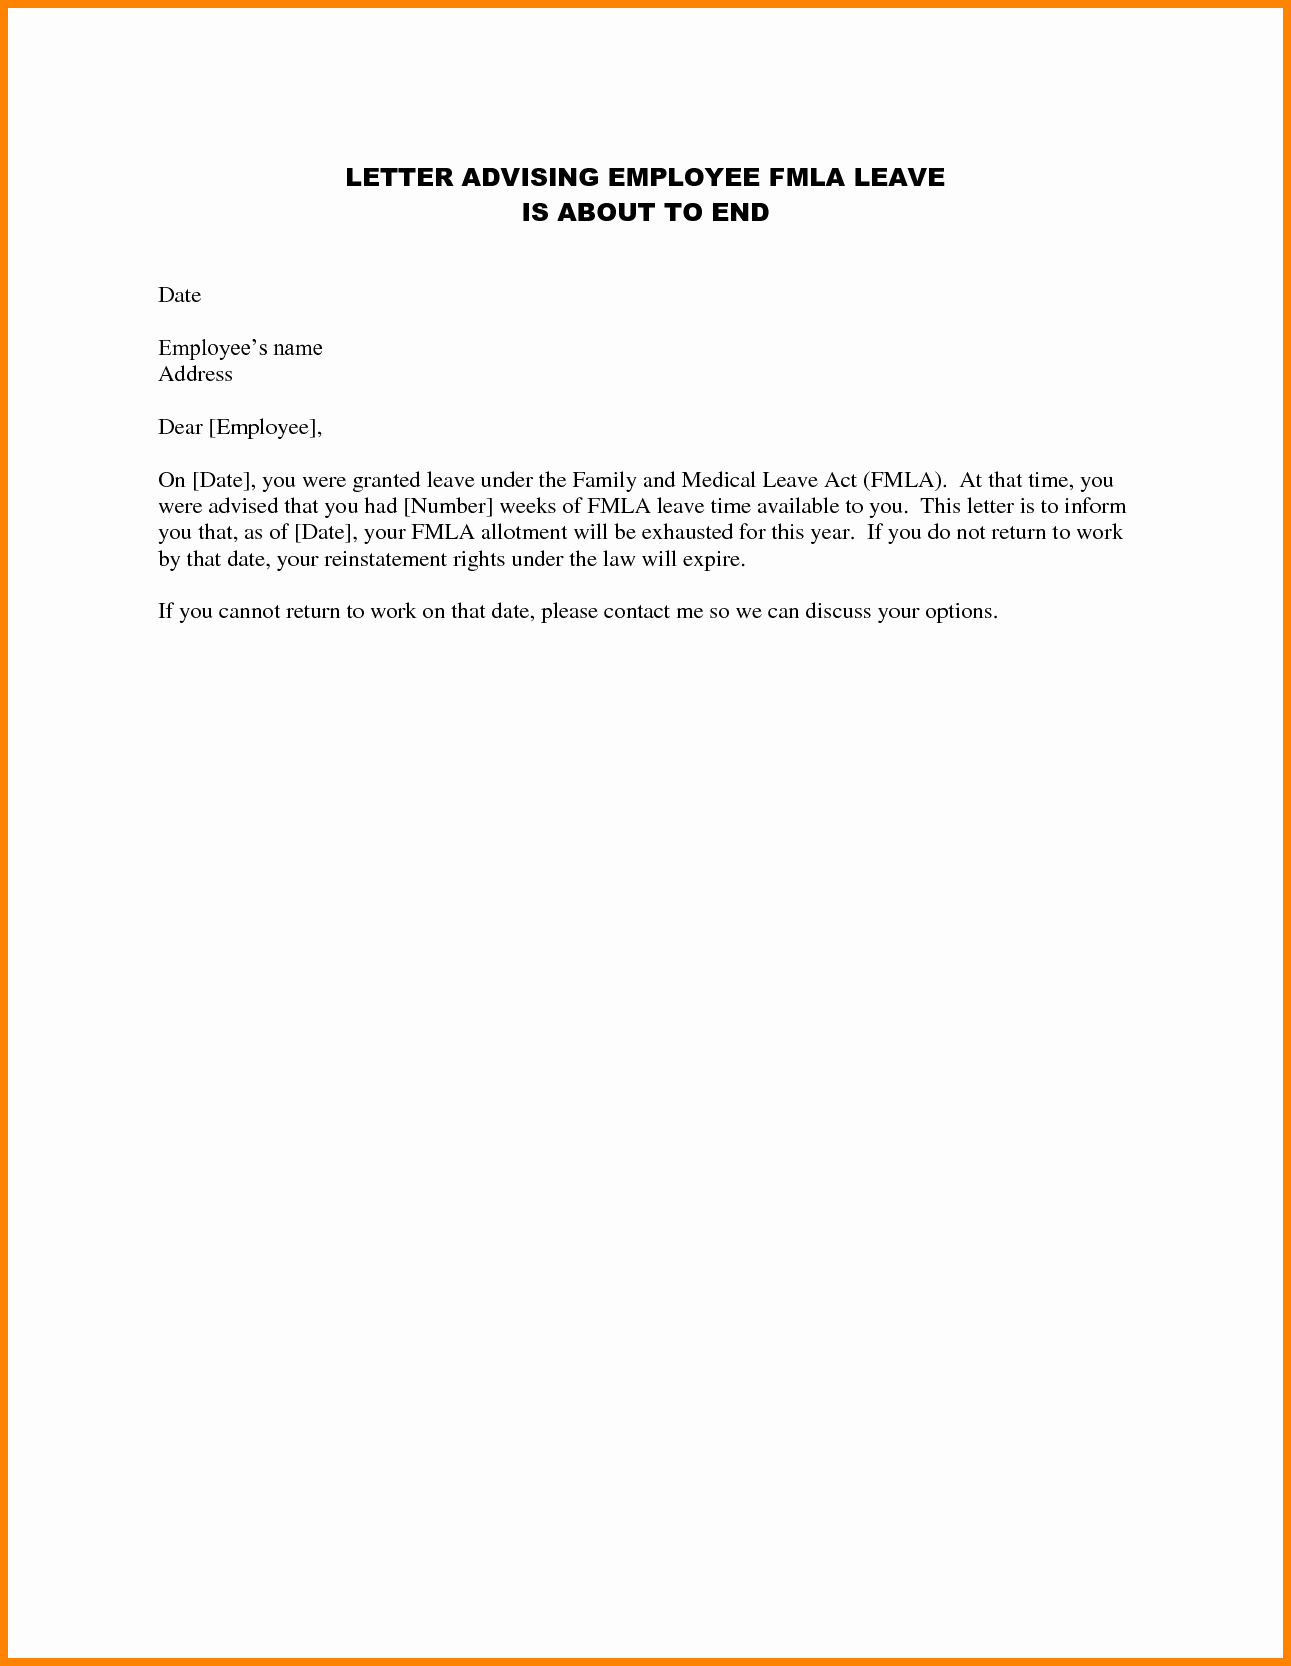 Announcement Of Employee Leaving Company Template New Index Of Cdn 24 1991 250